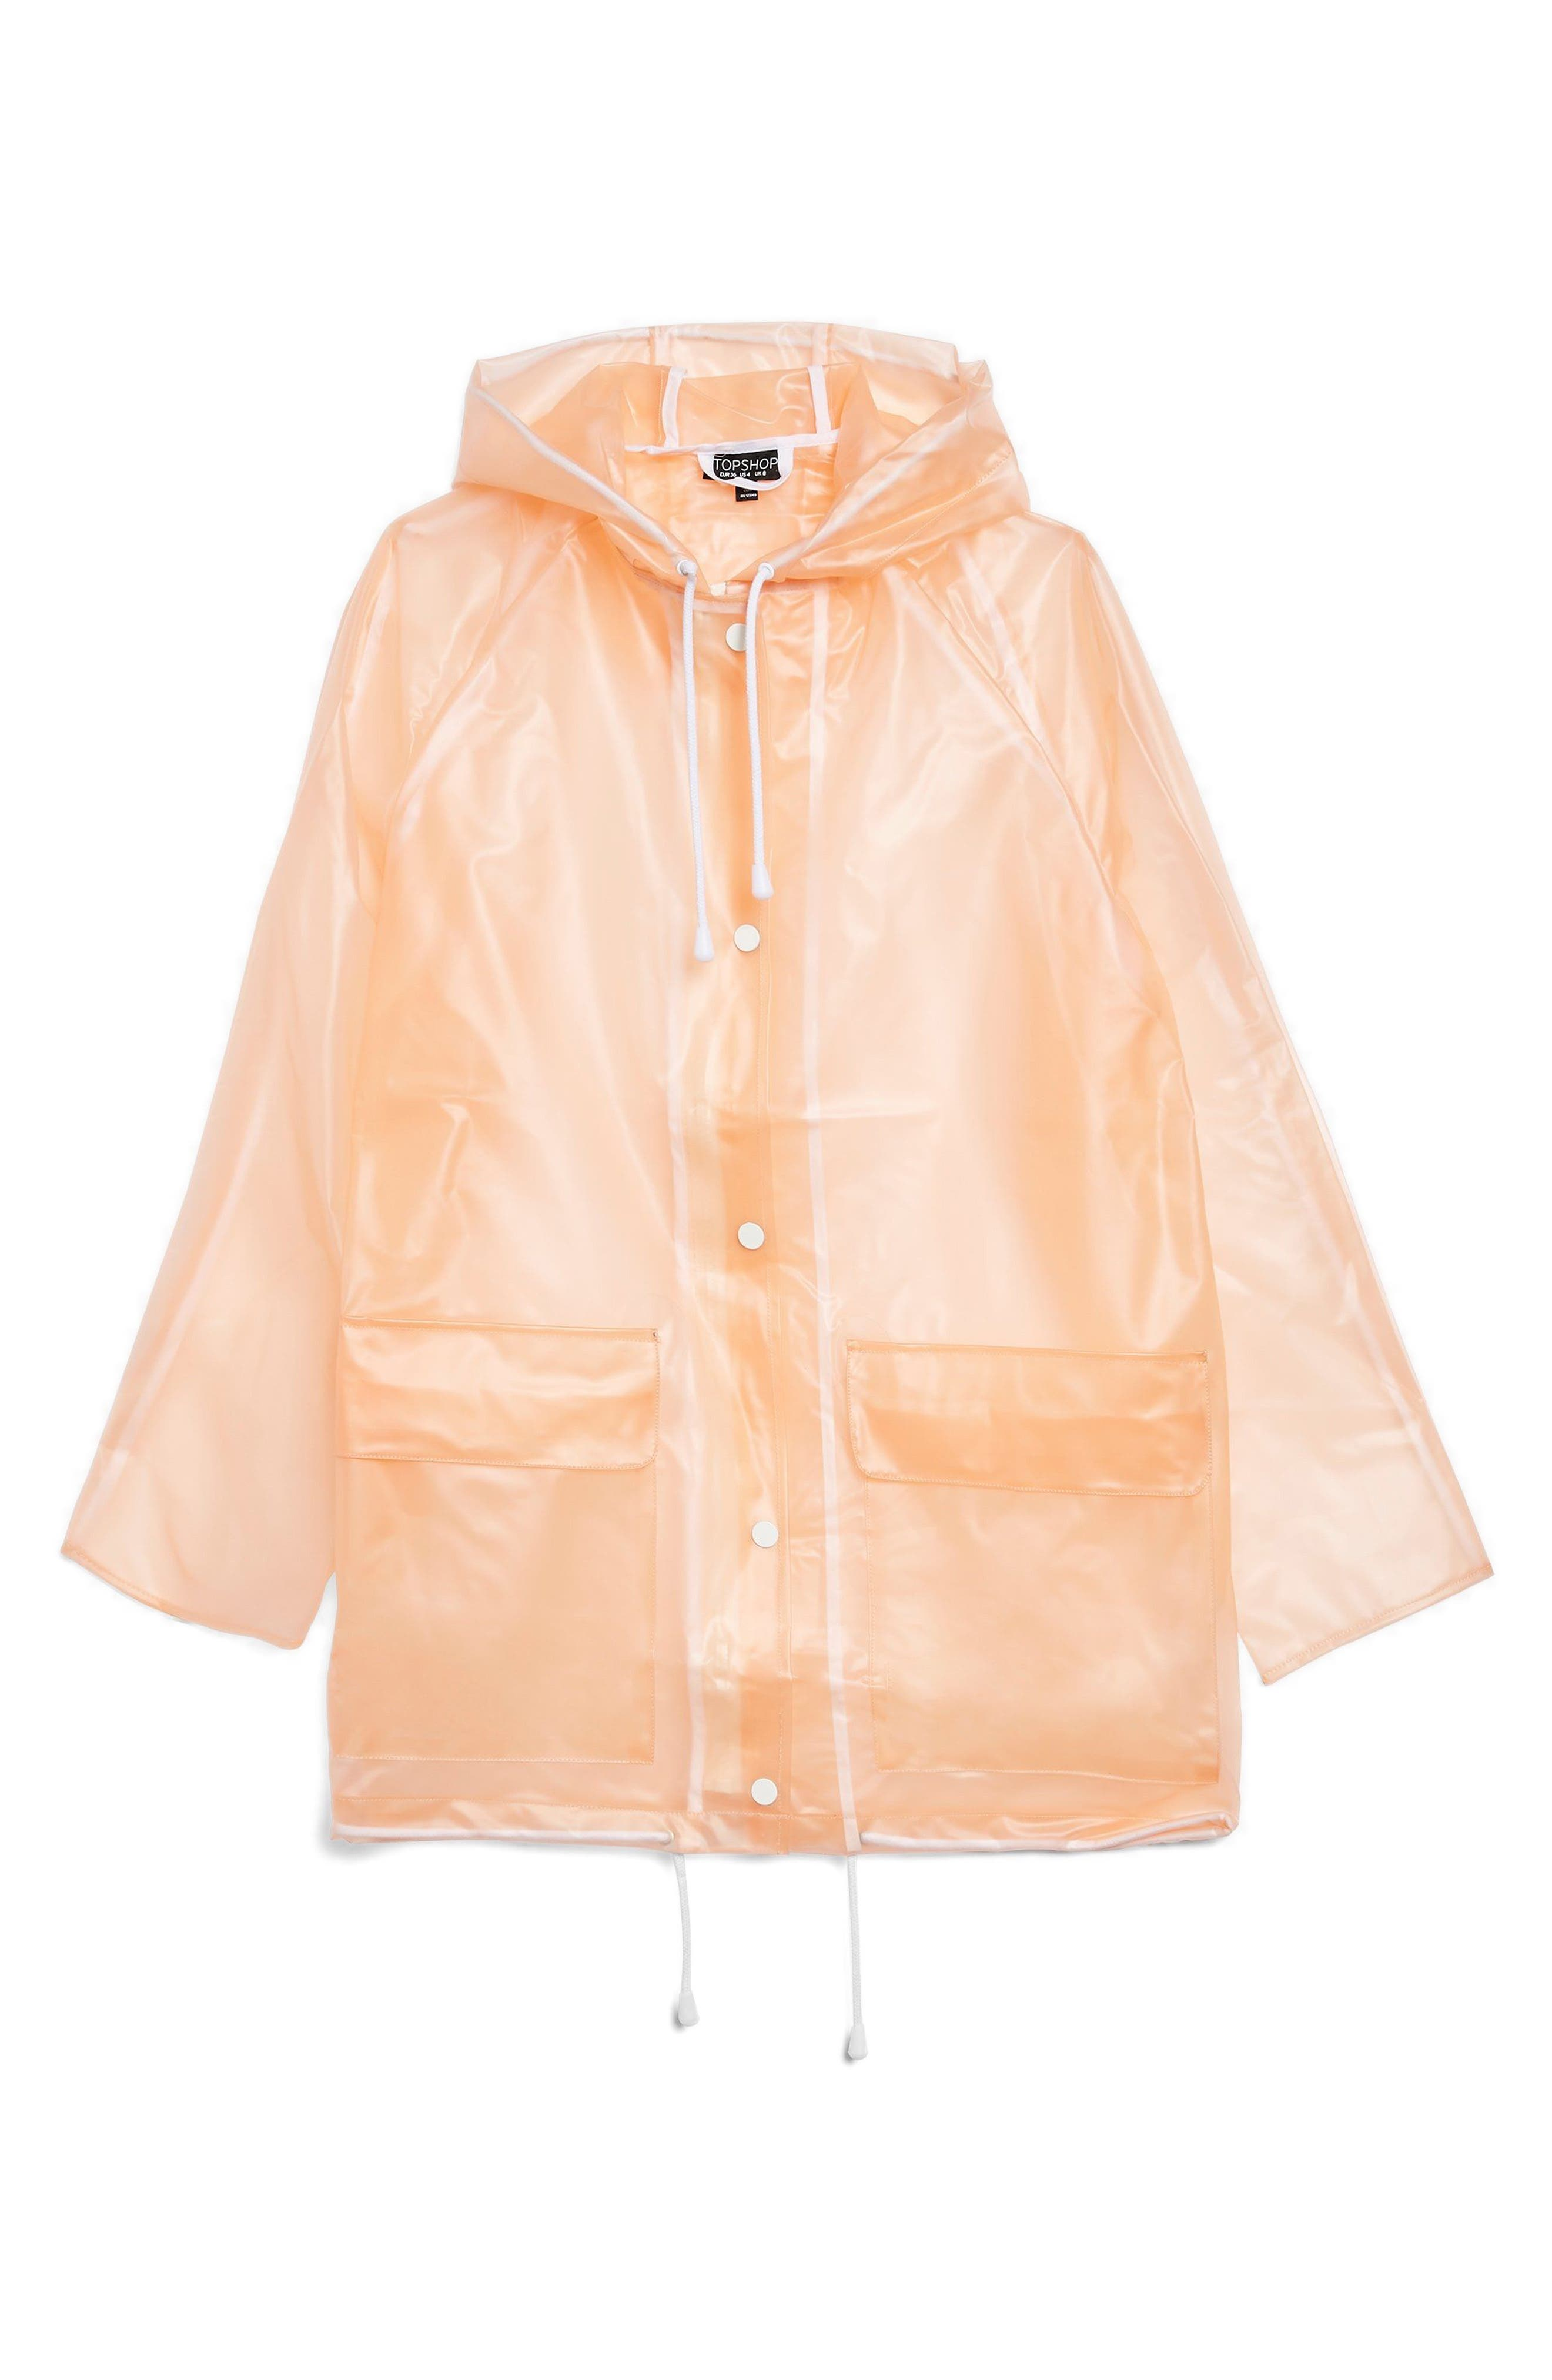 Frosted Marge Mac Rain Jacket,                             Alternate thumbnail 4, color,                             950